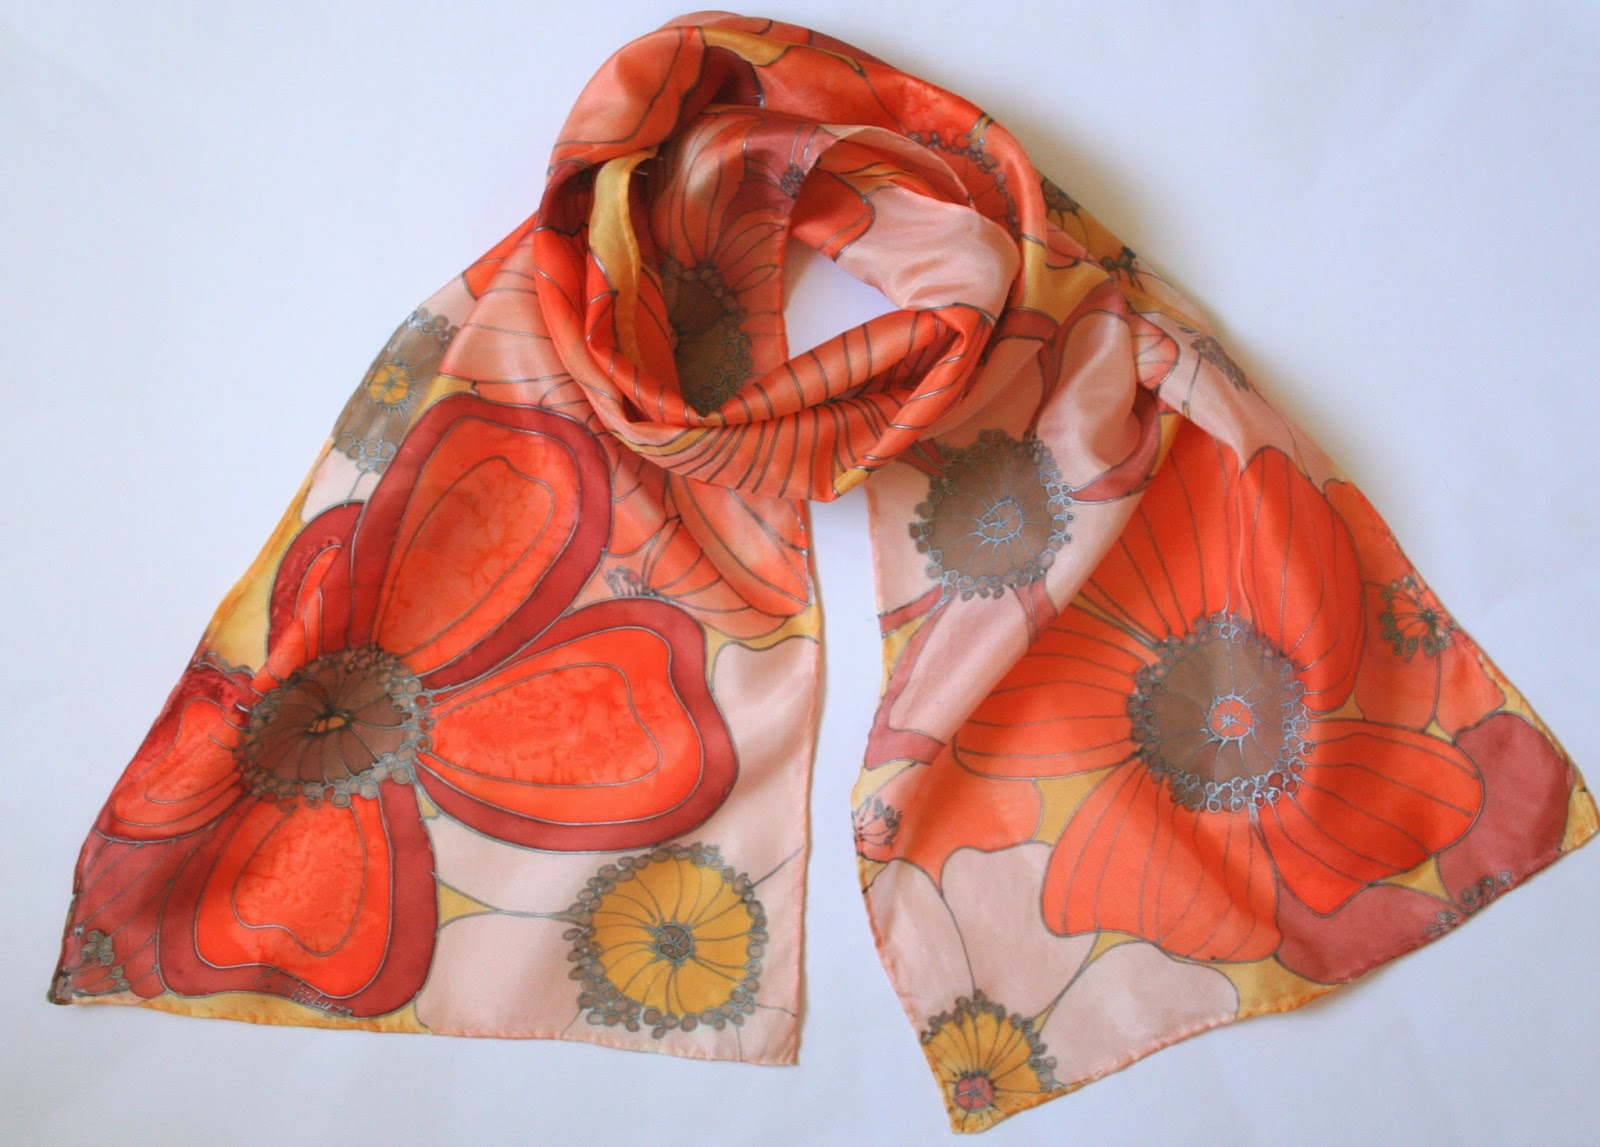 https://www.etsy.com/listing/187573051/orange-scarf-bright-scarf-floral-scarf?ref=shop_home_active_2